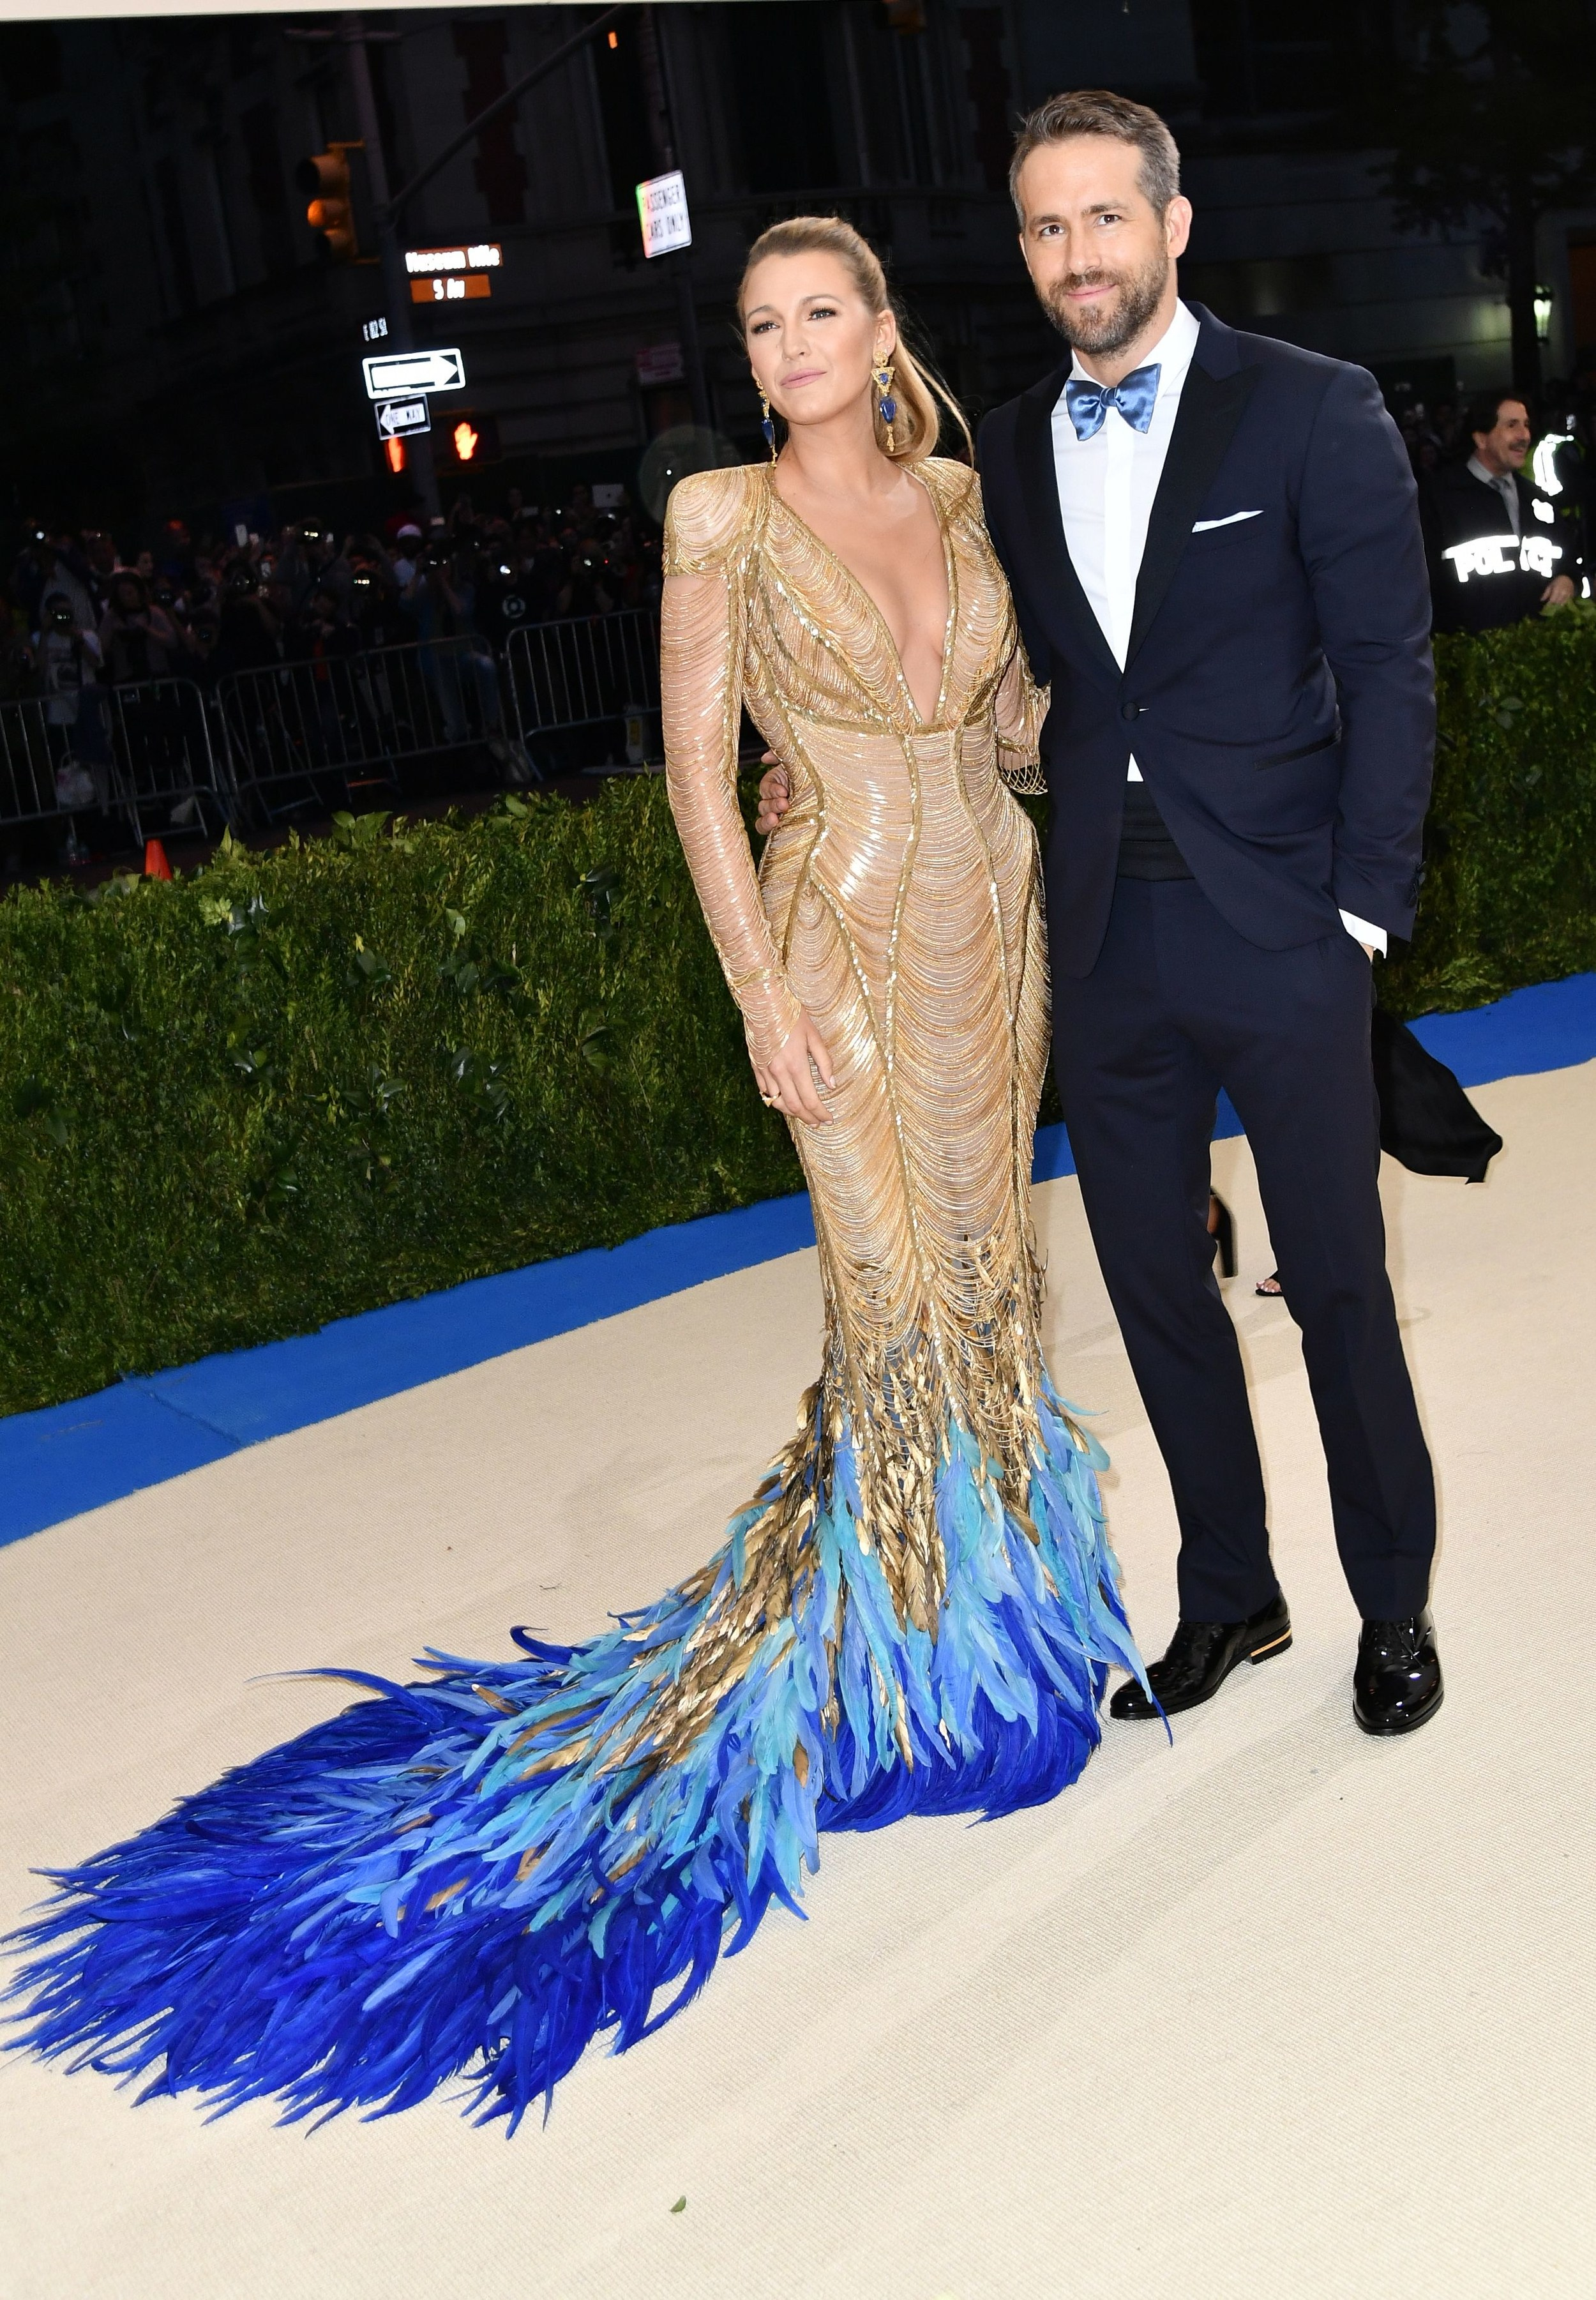 Blake Lively in Lorraine Schwartz jewelry and Ryan Reynolds